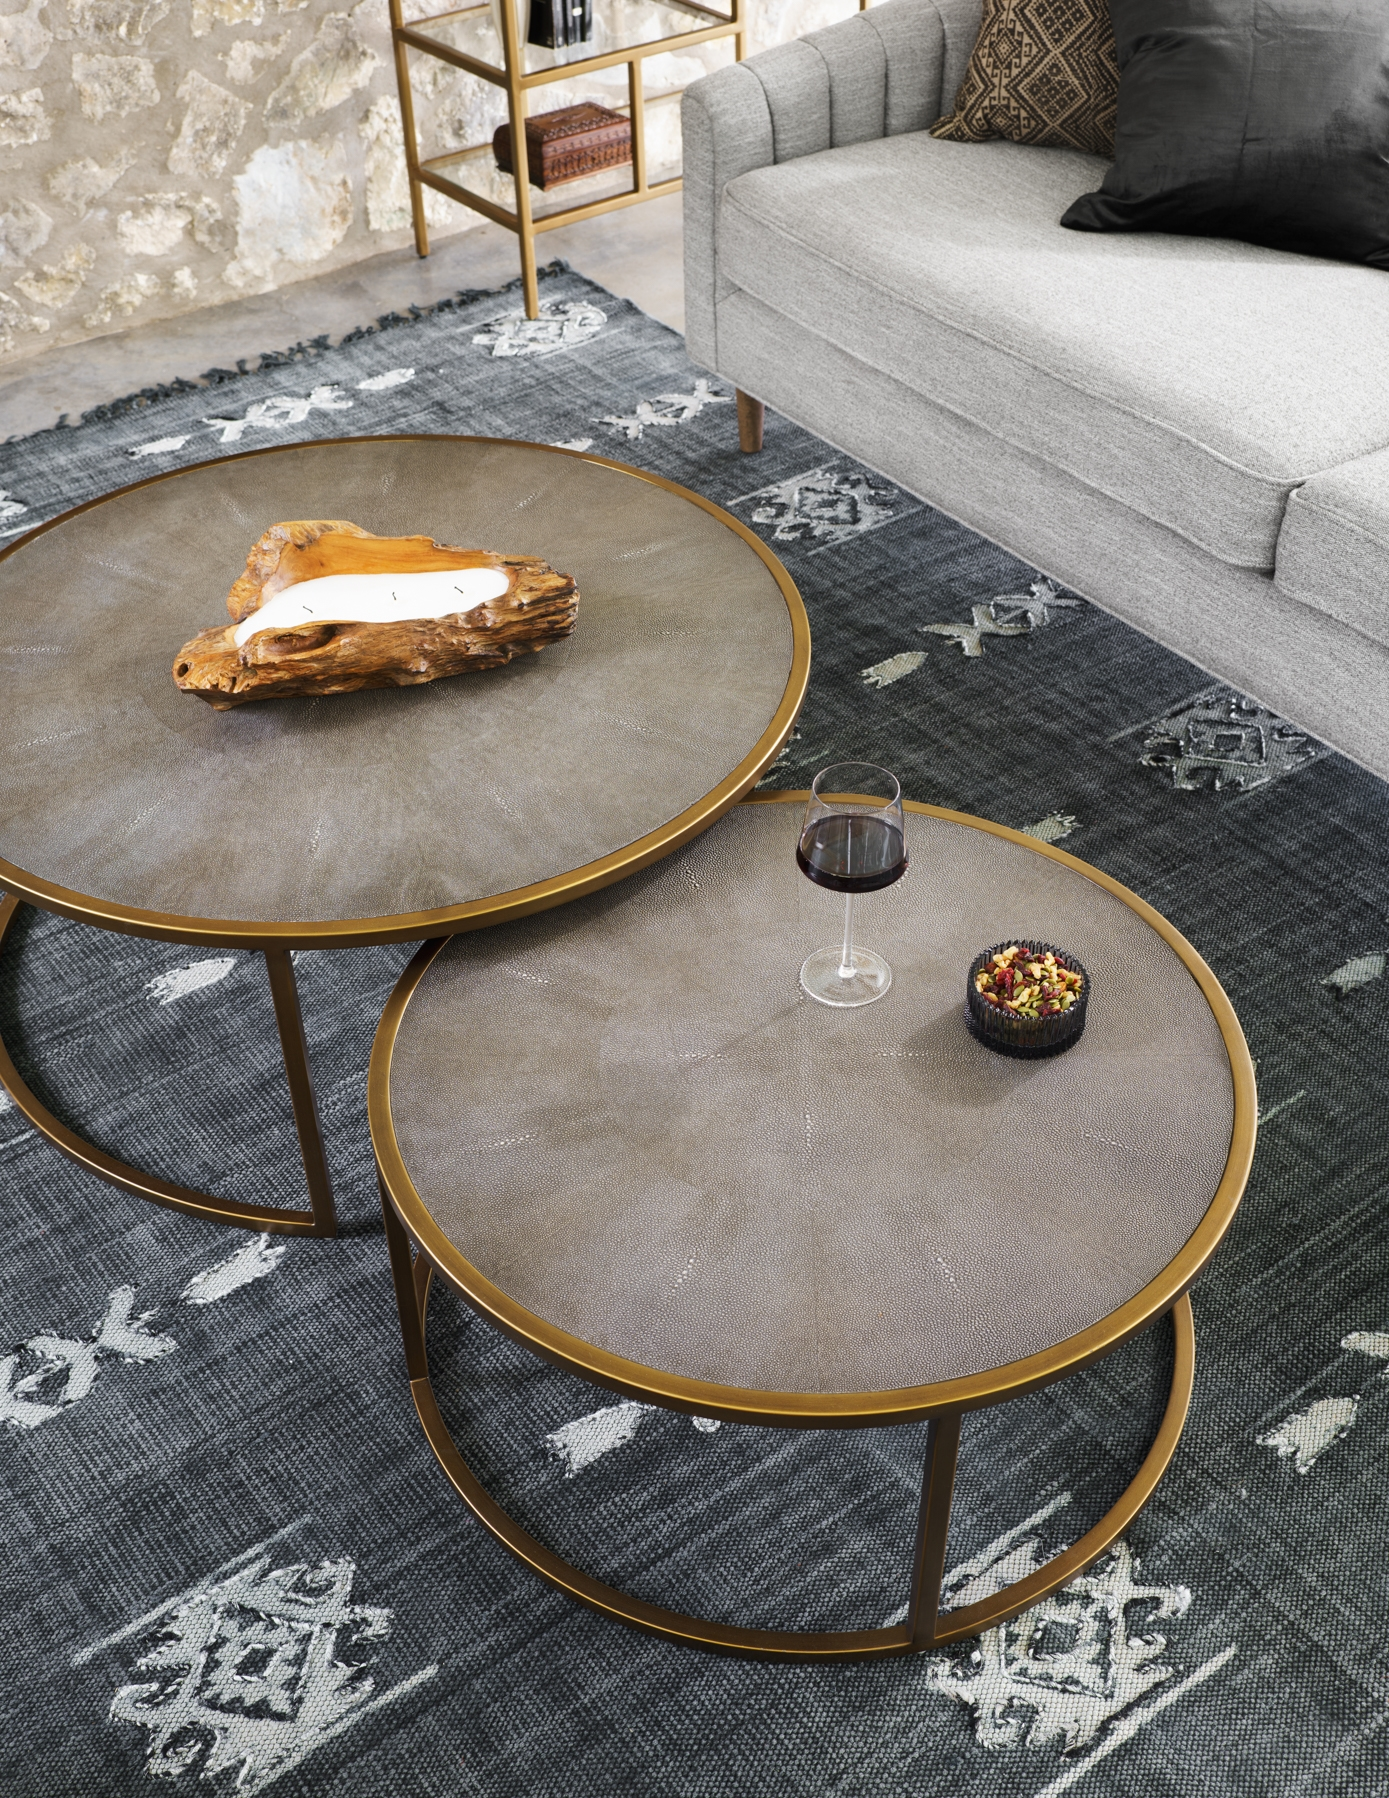 Well-liked Shagreen Nesting Coffee Table DB79